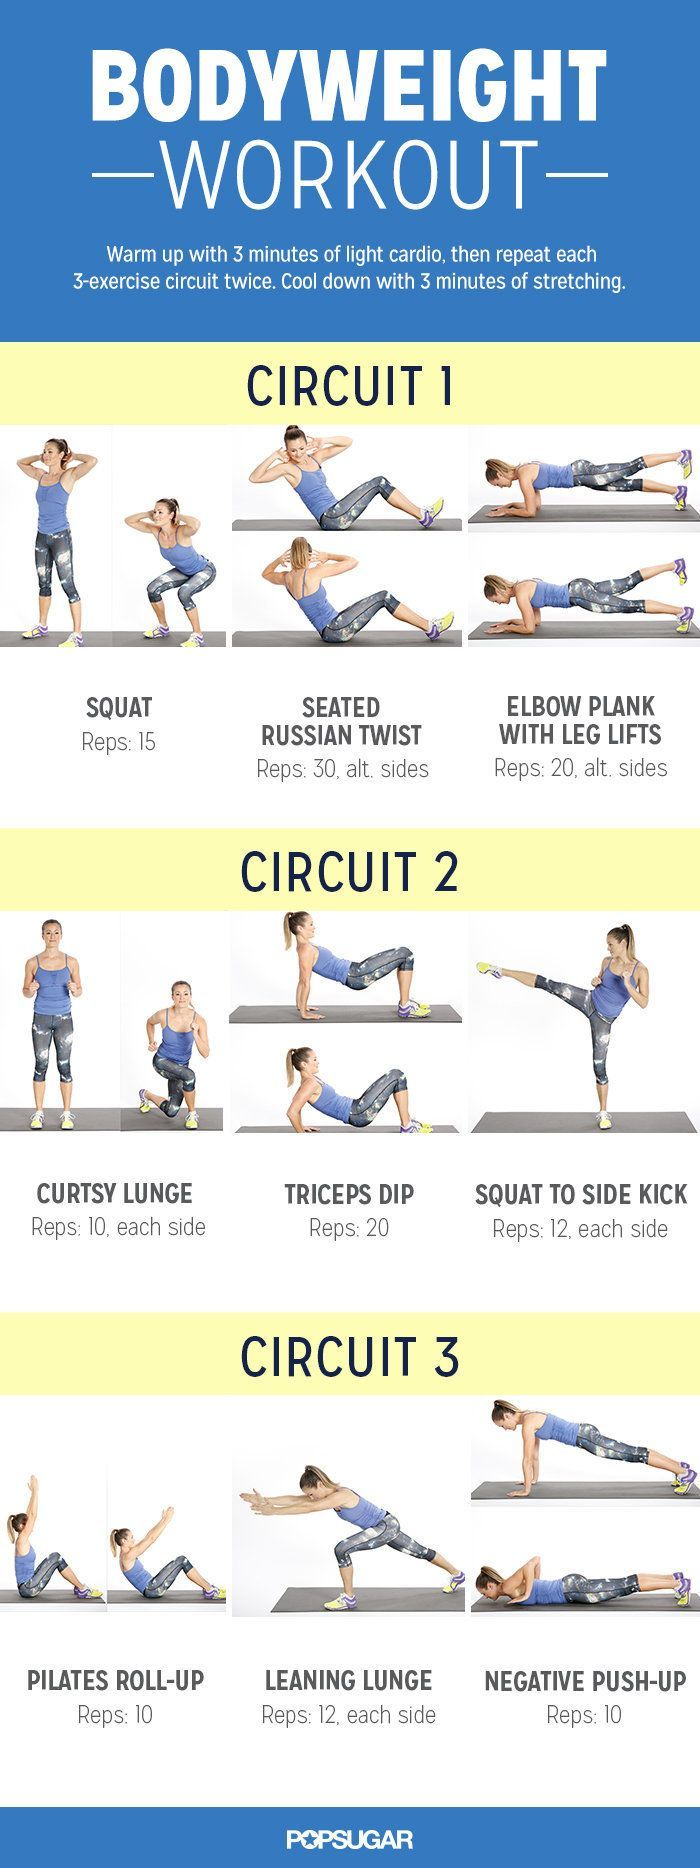 #bodyweight #strengthen #popsugar #workout #workout #fitness #entire #athome #women #tone #your #bod...